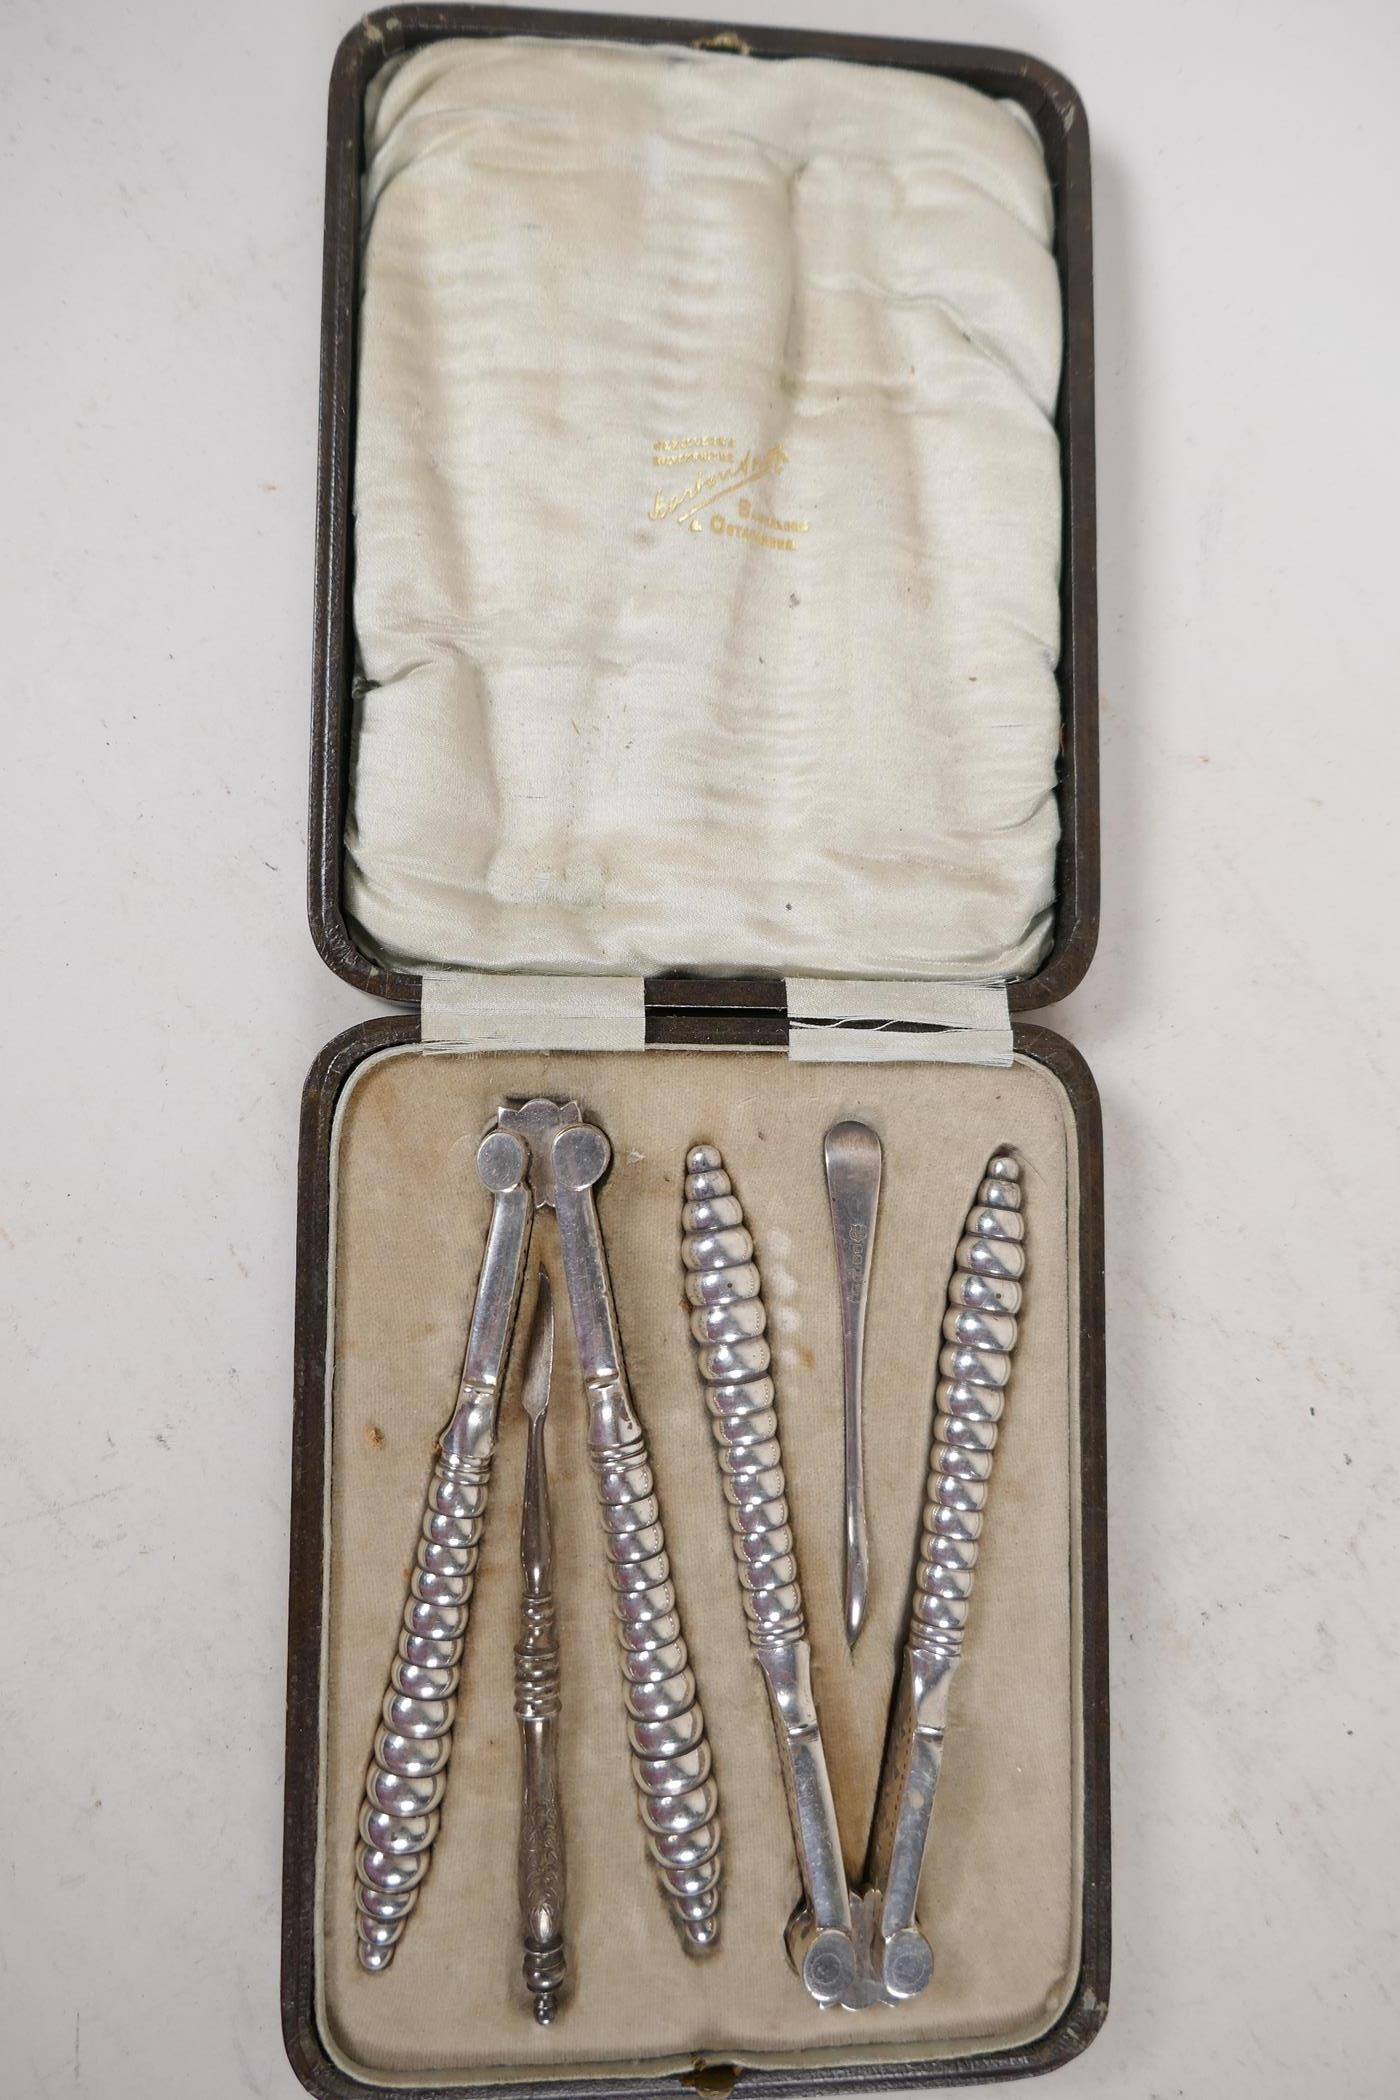 """A boxed set of C19th silver plated shellfish tools and crackers, 5½"""" long - Image 2 of 2"""